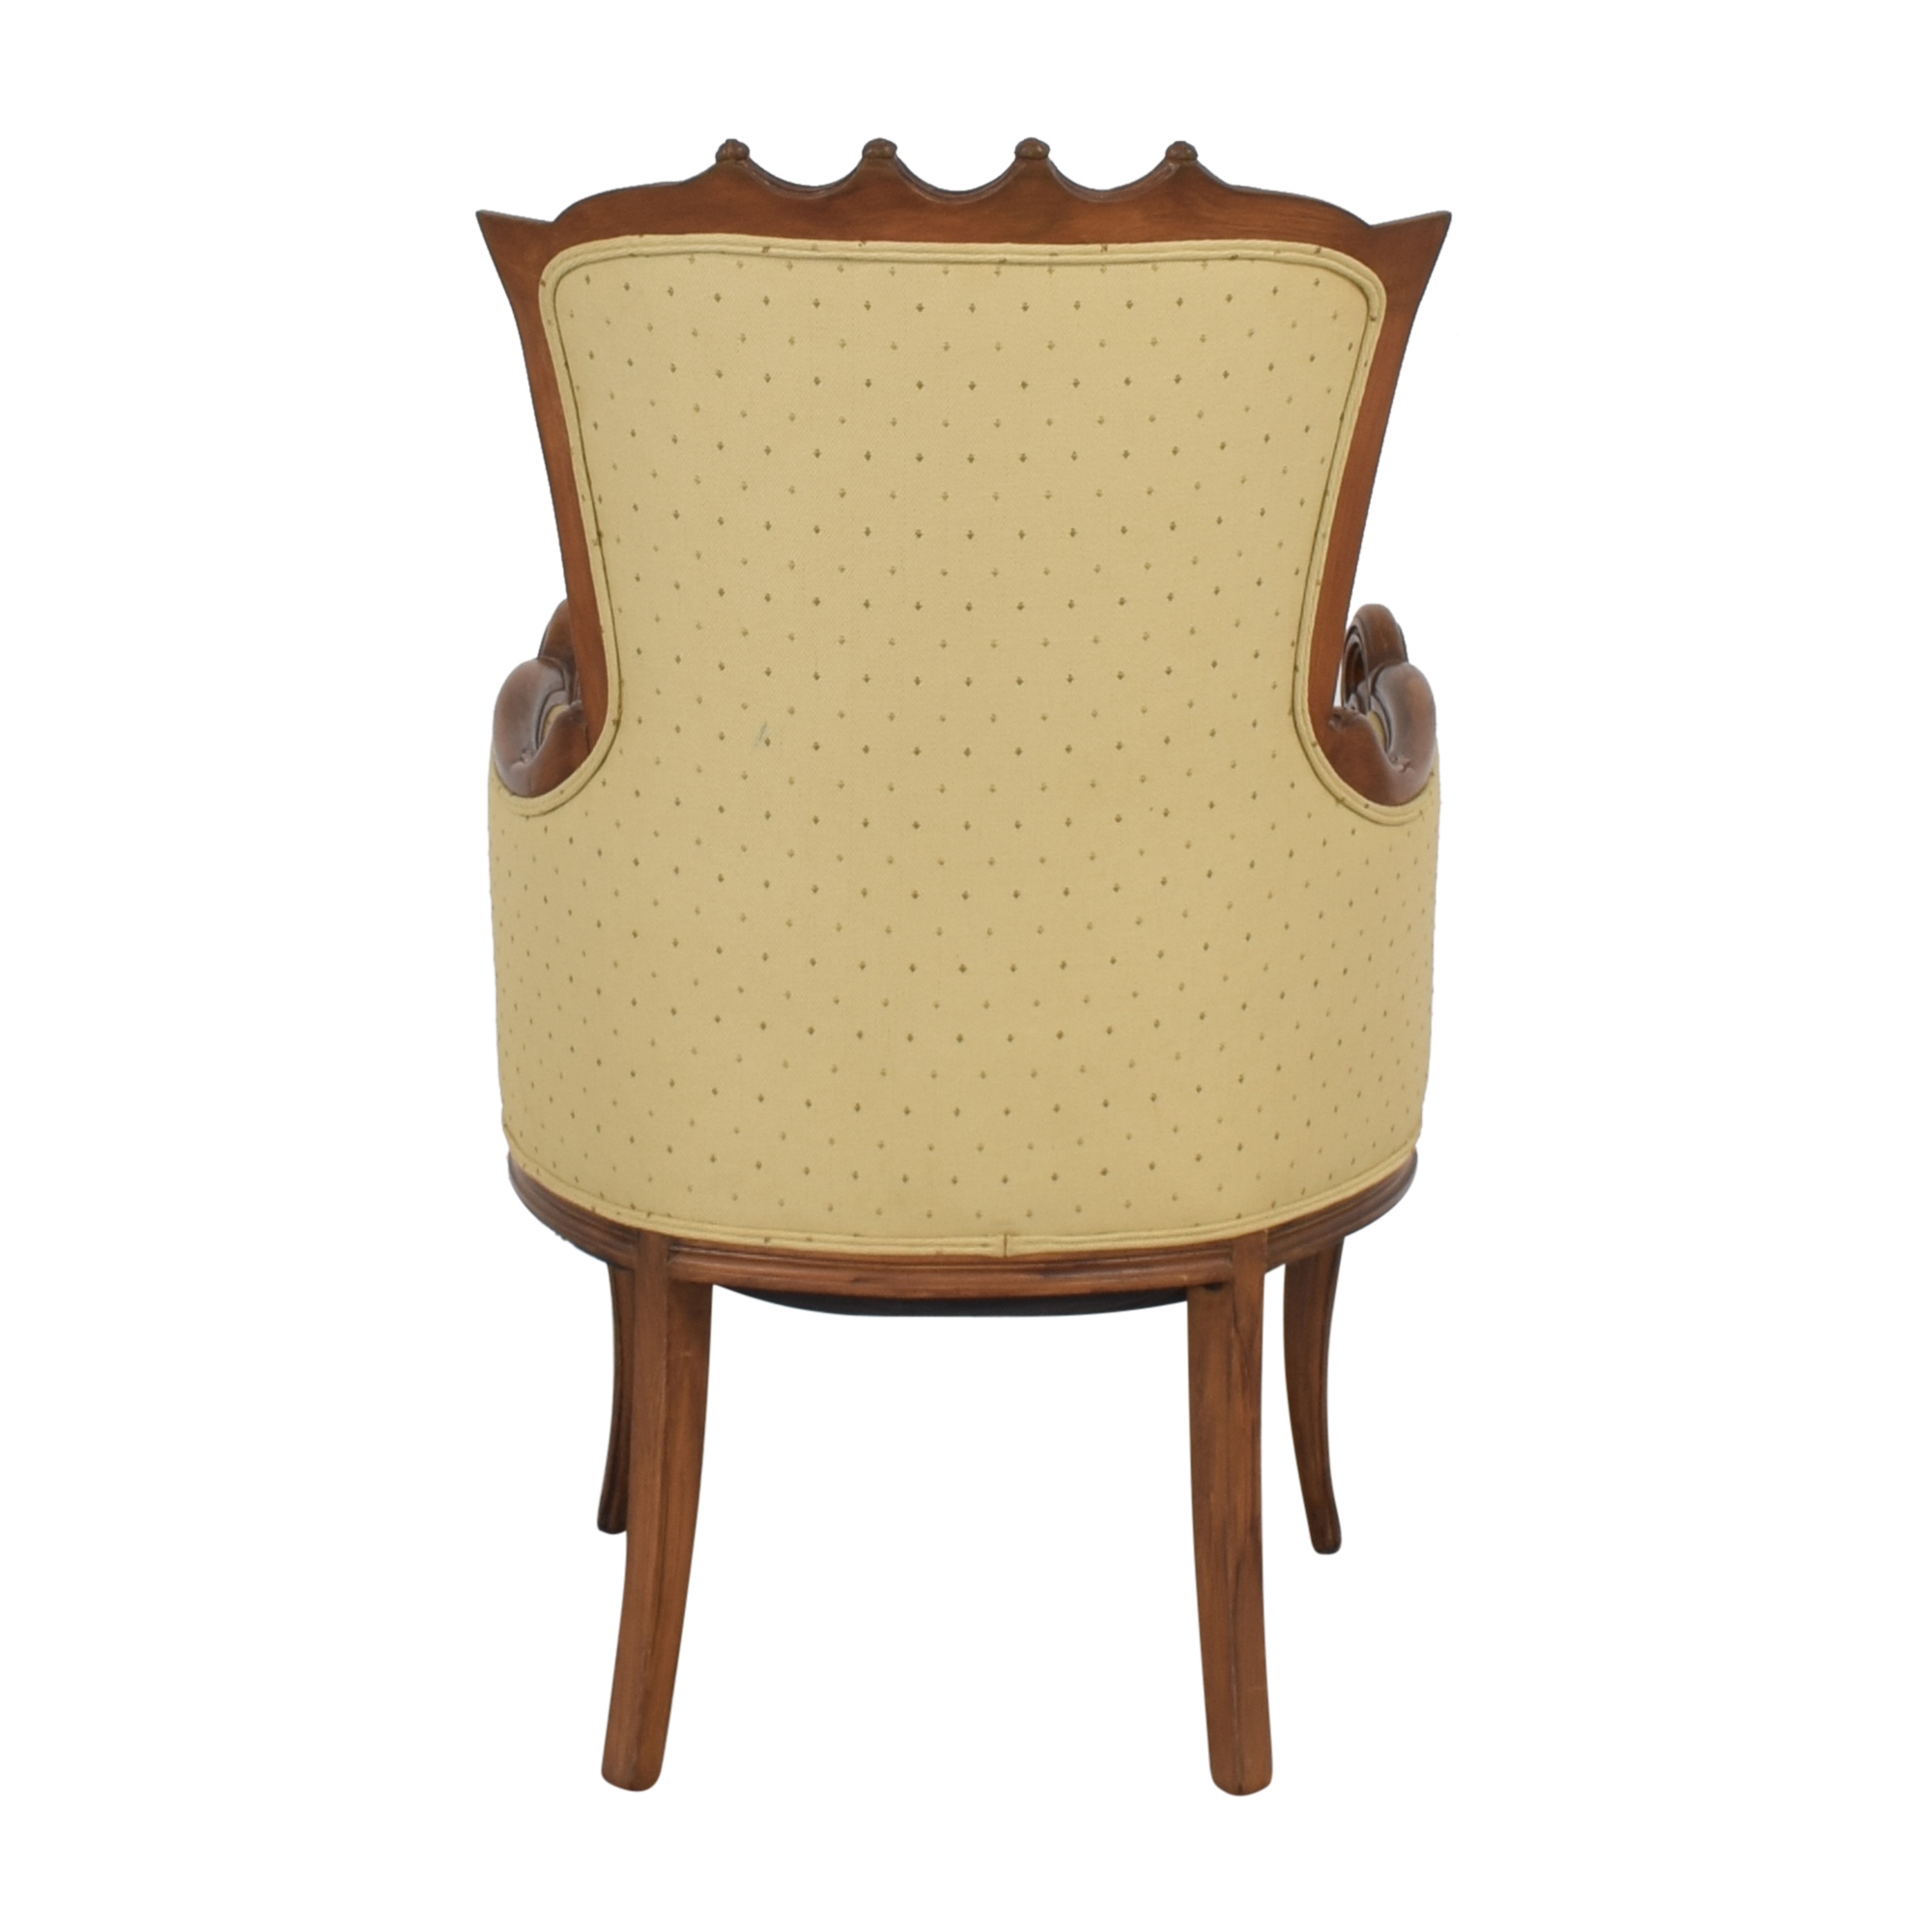 French Provincial Style Arm Chair for sale